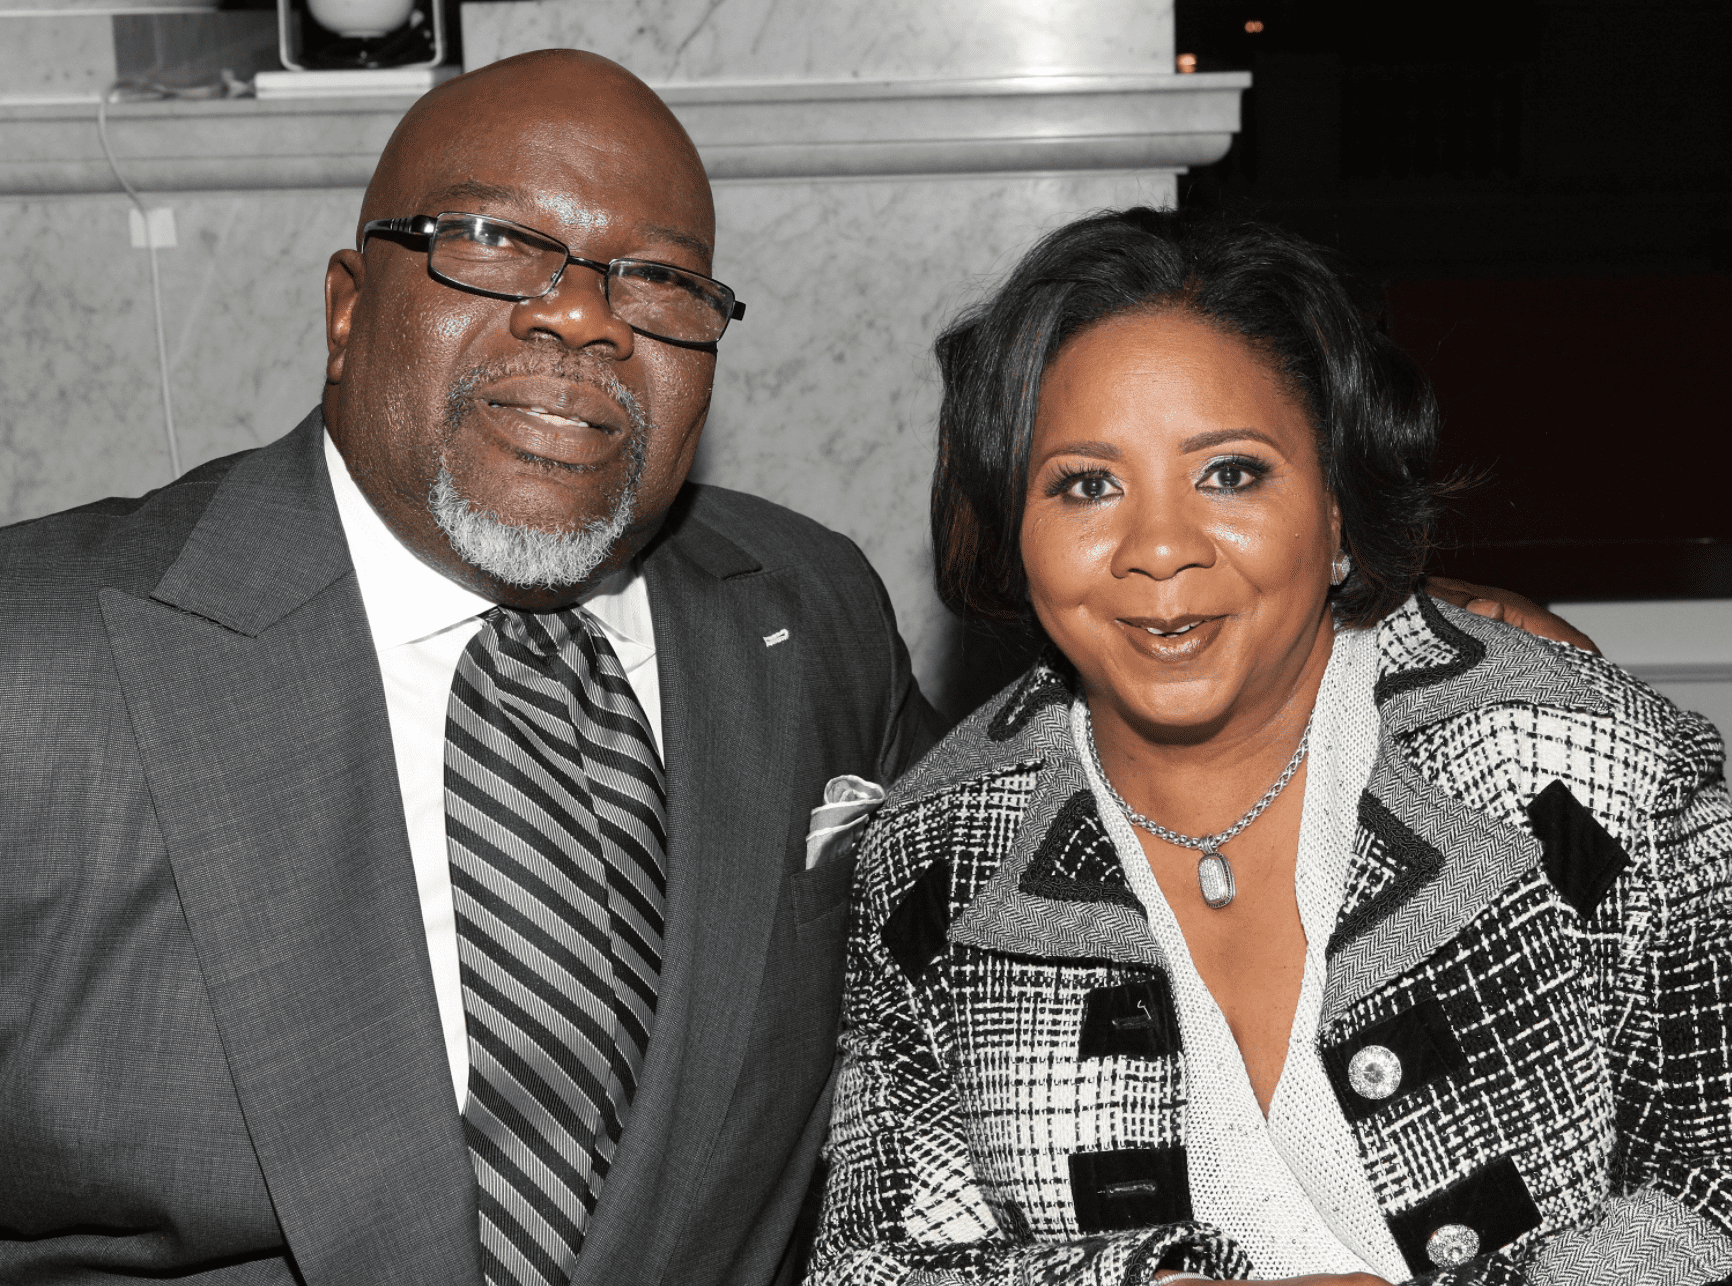 Bishop T. D. Jakes and his wife Serita Jakes at the BET Honors 2013.   Photo: Getty Images